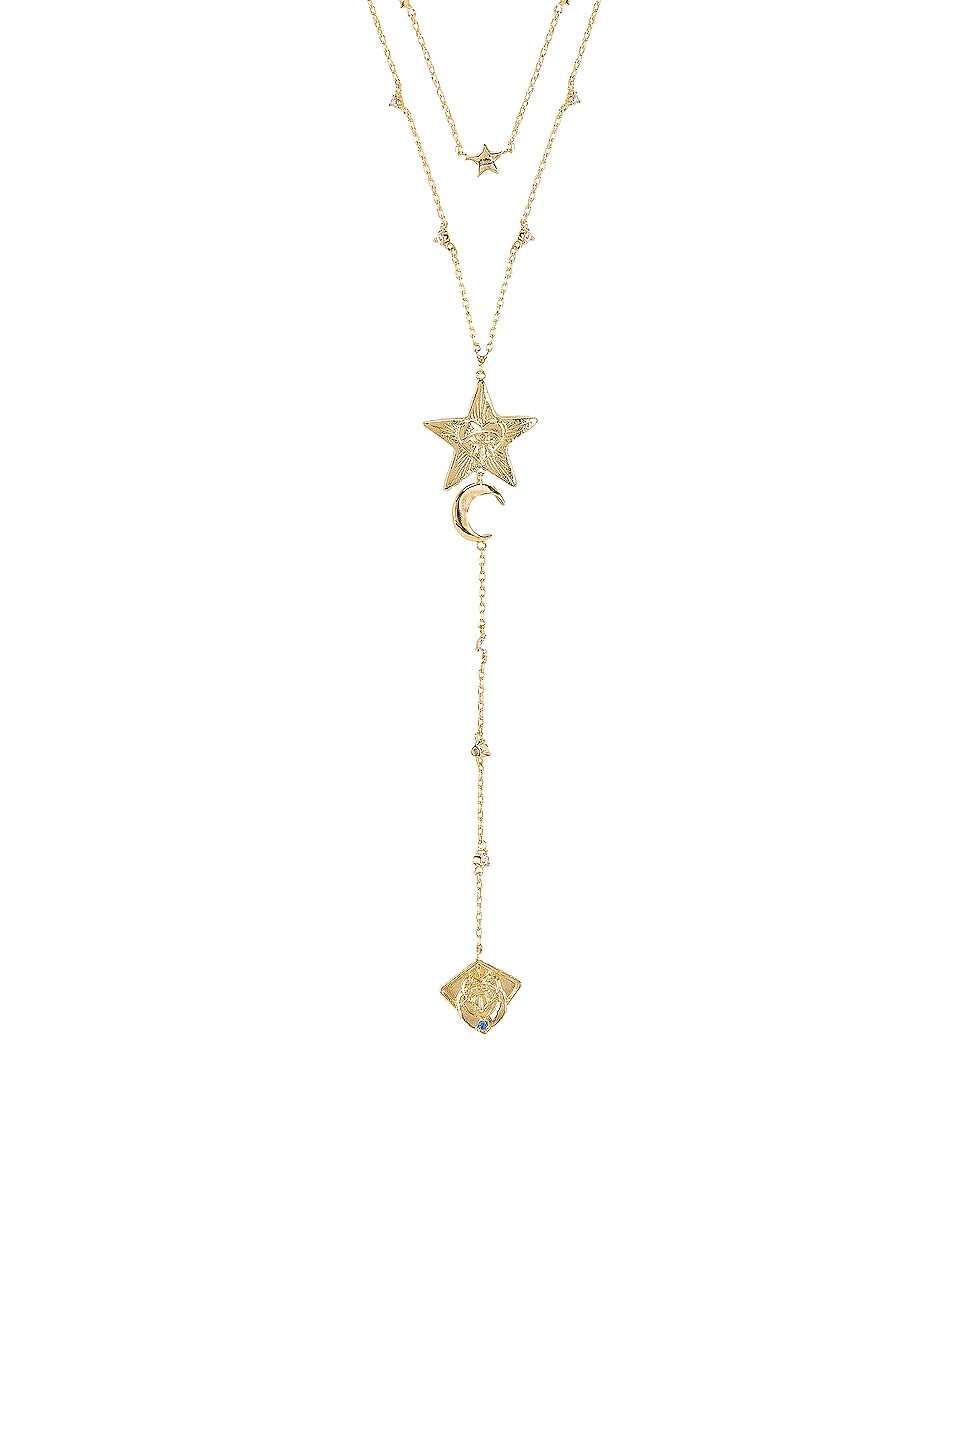 Wanderlust + Co Stella Layered Necklace in Gold